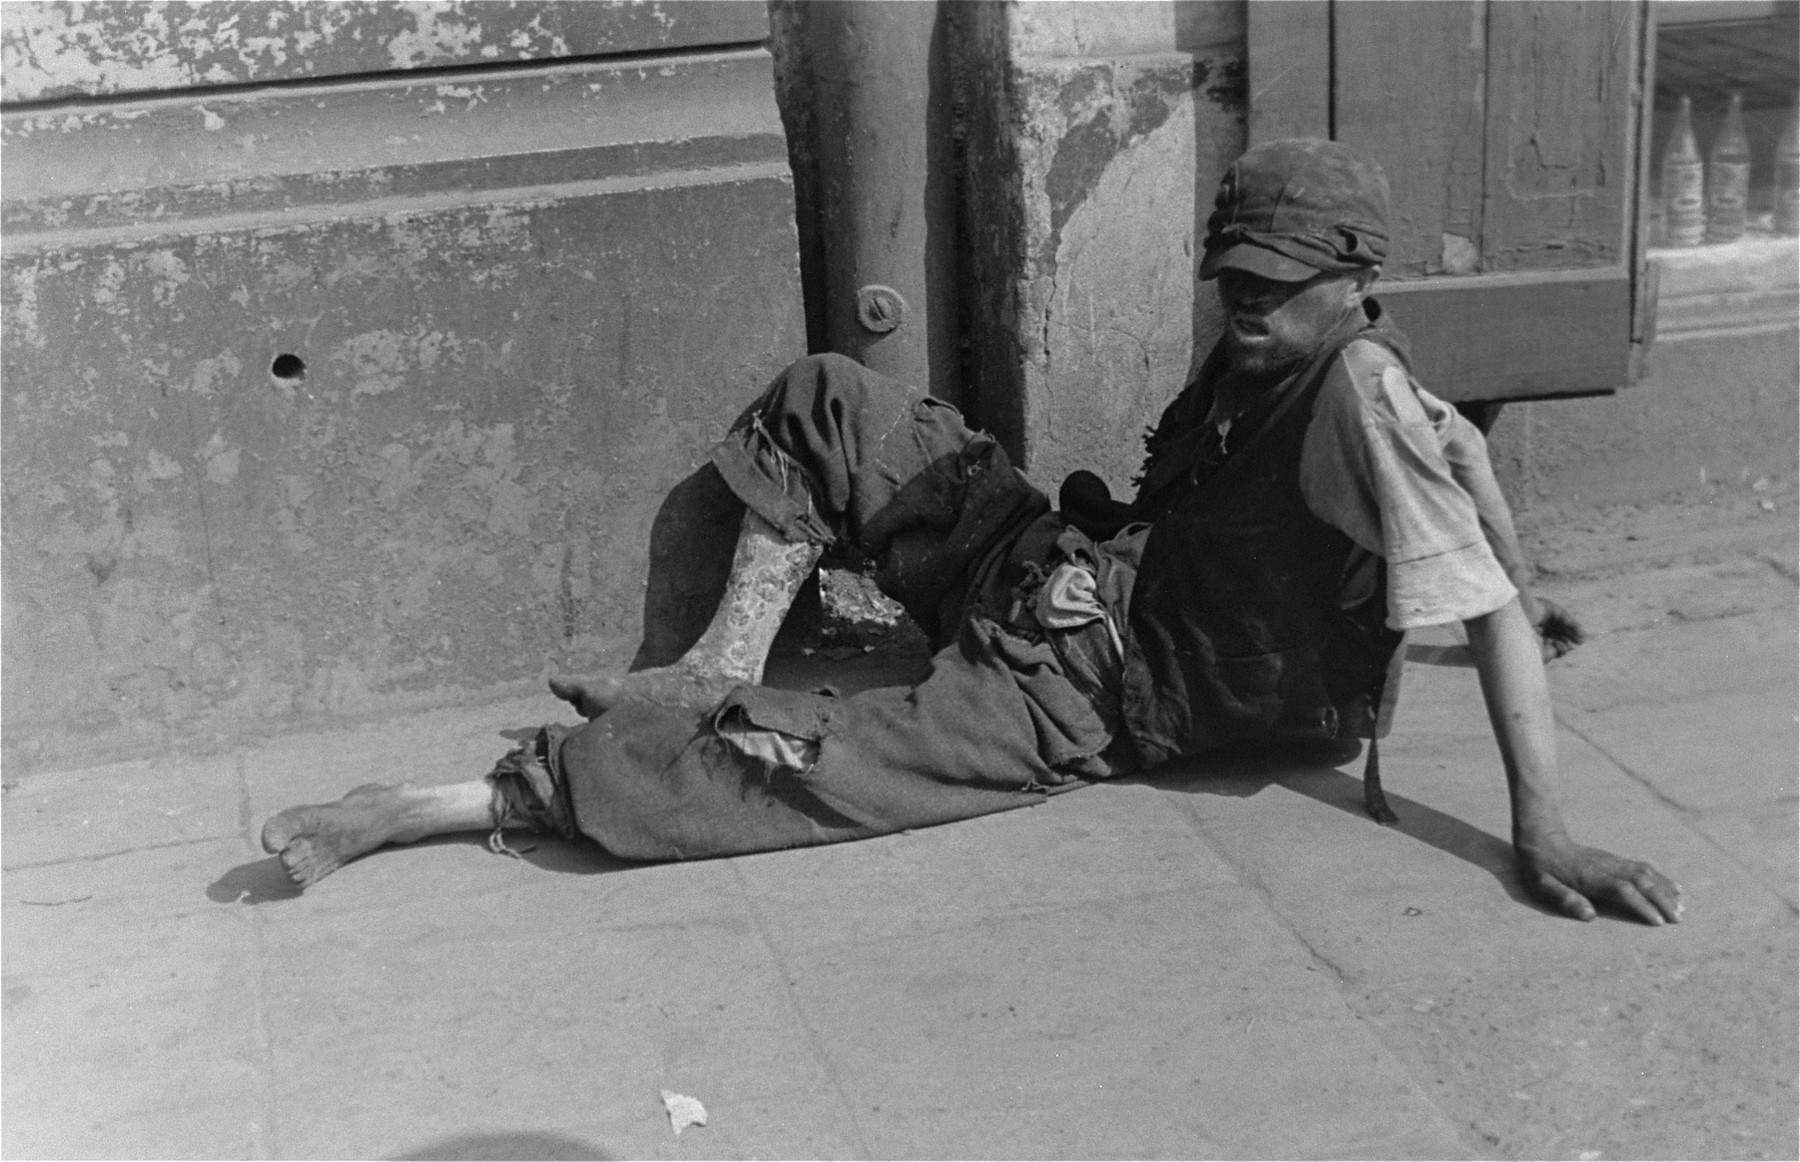 A destitute youth sits on the pavement in the Warsaw ghetto.